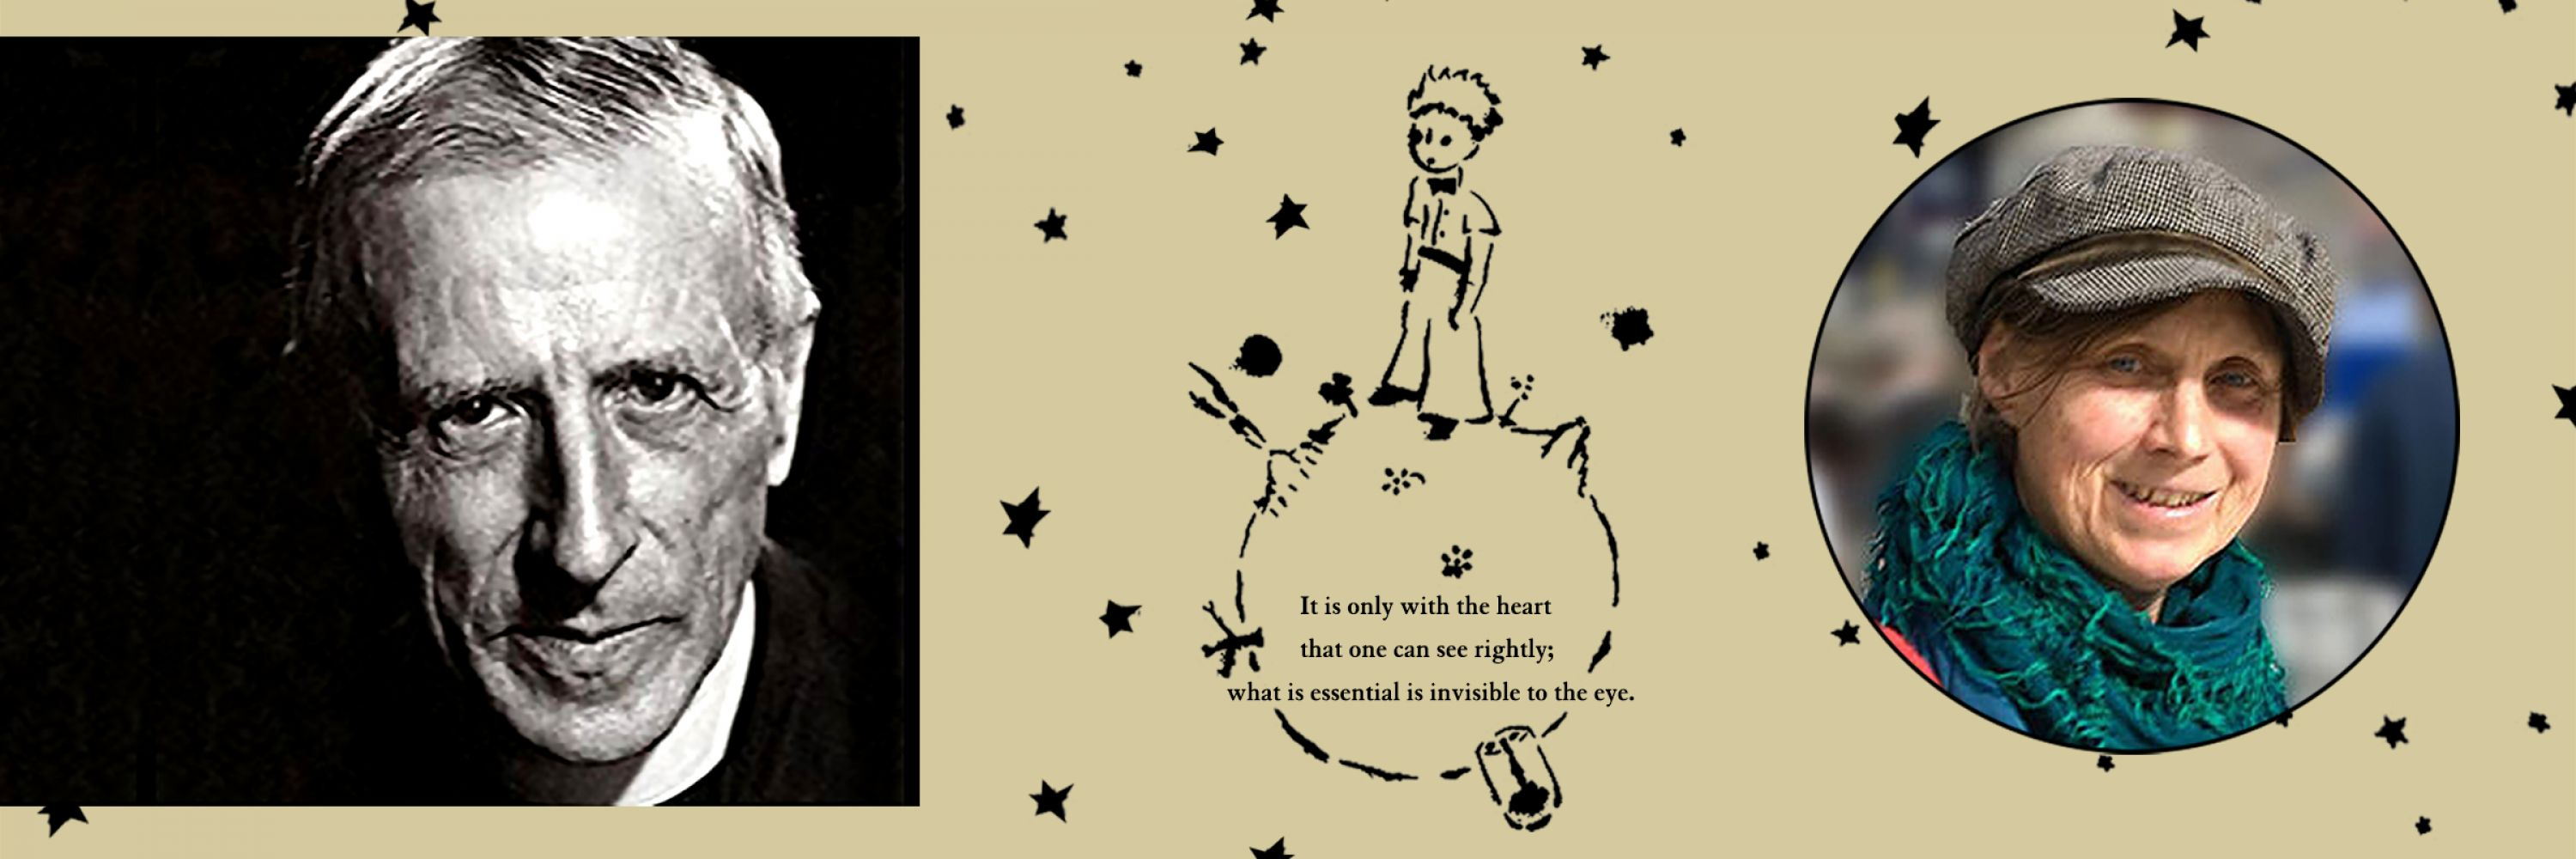 Cynthia Bourgeault: Seeing with the Heart: from The Little Prince to Teilhard de Chardin